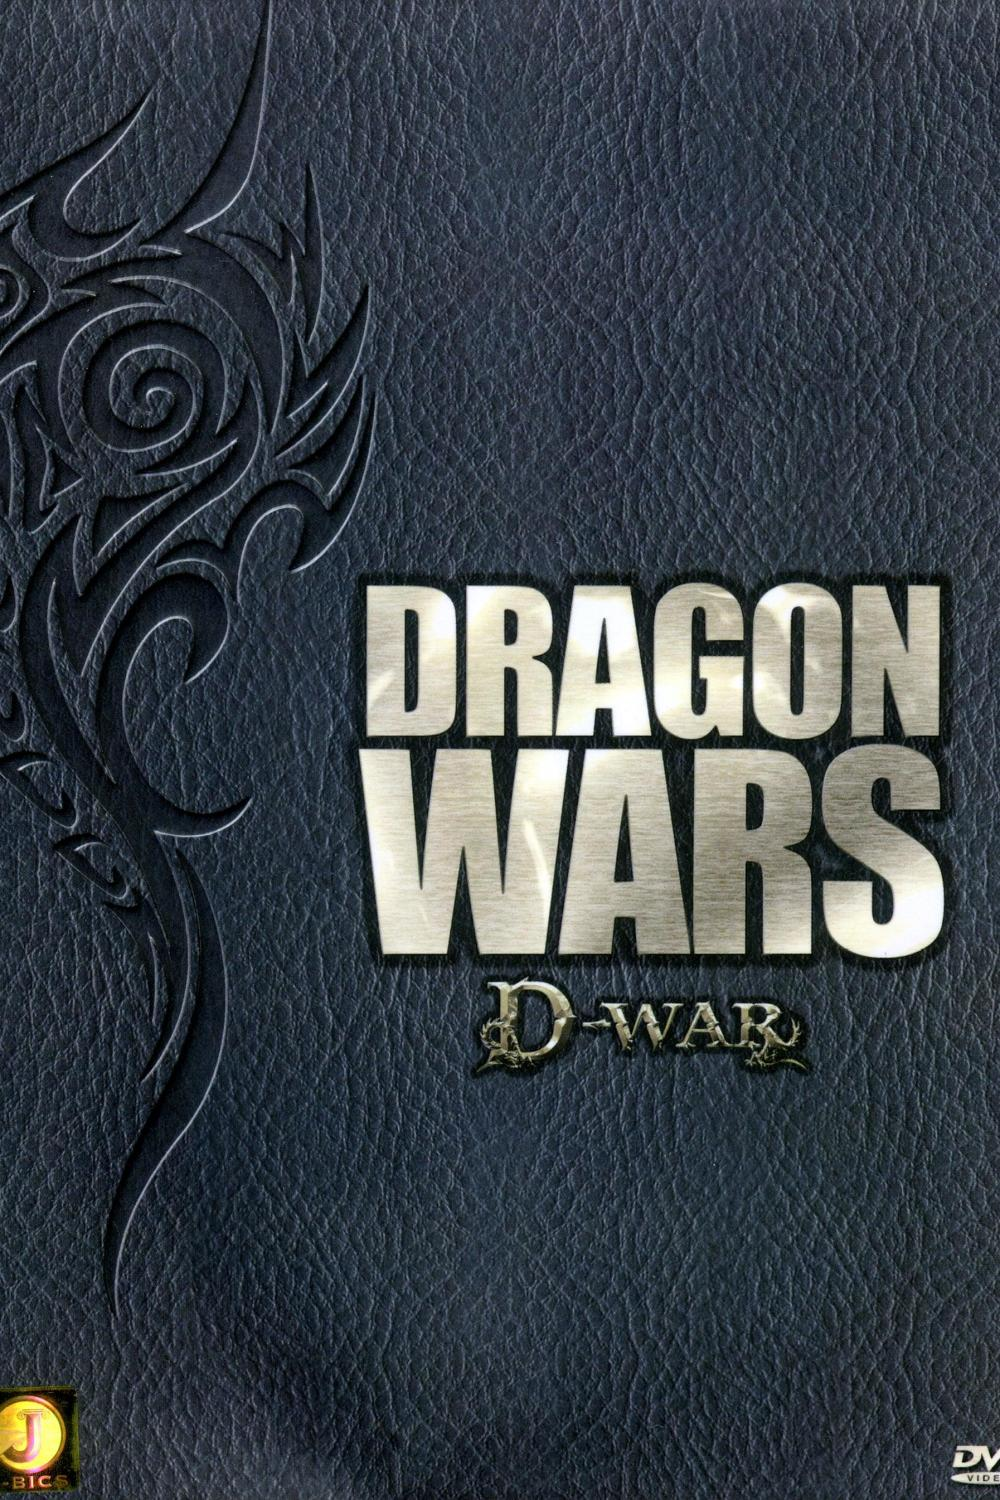 Dragon Wars: D-War (2007)